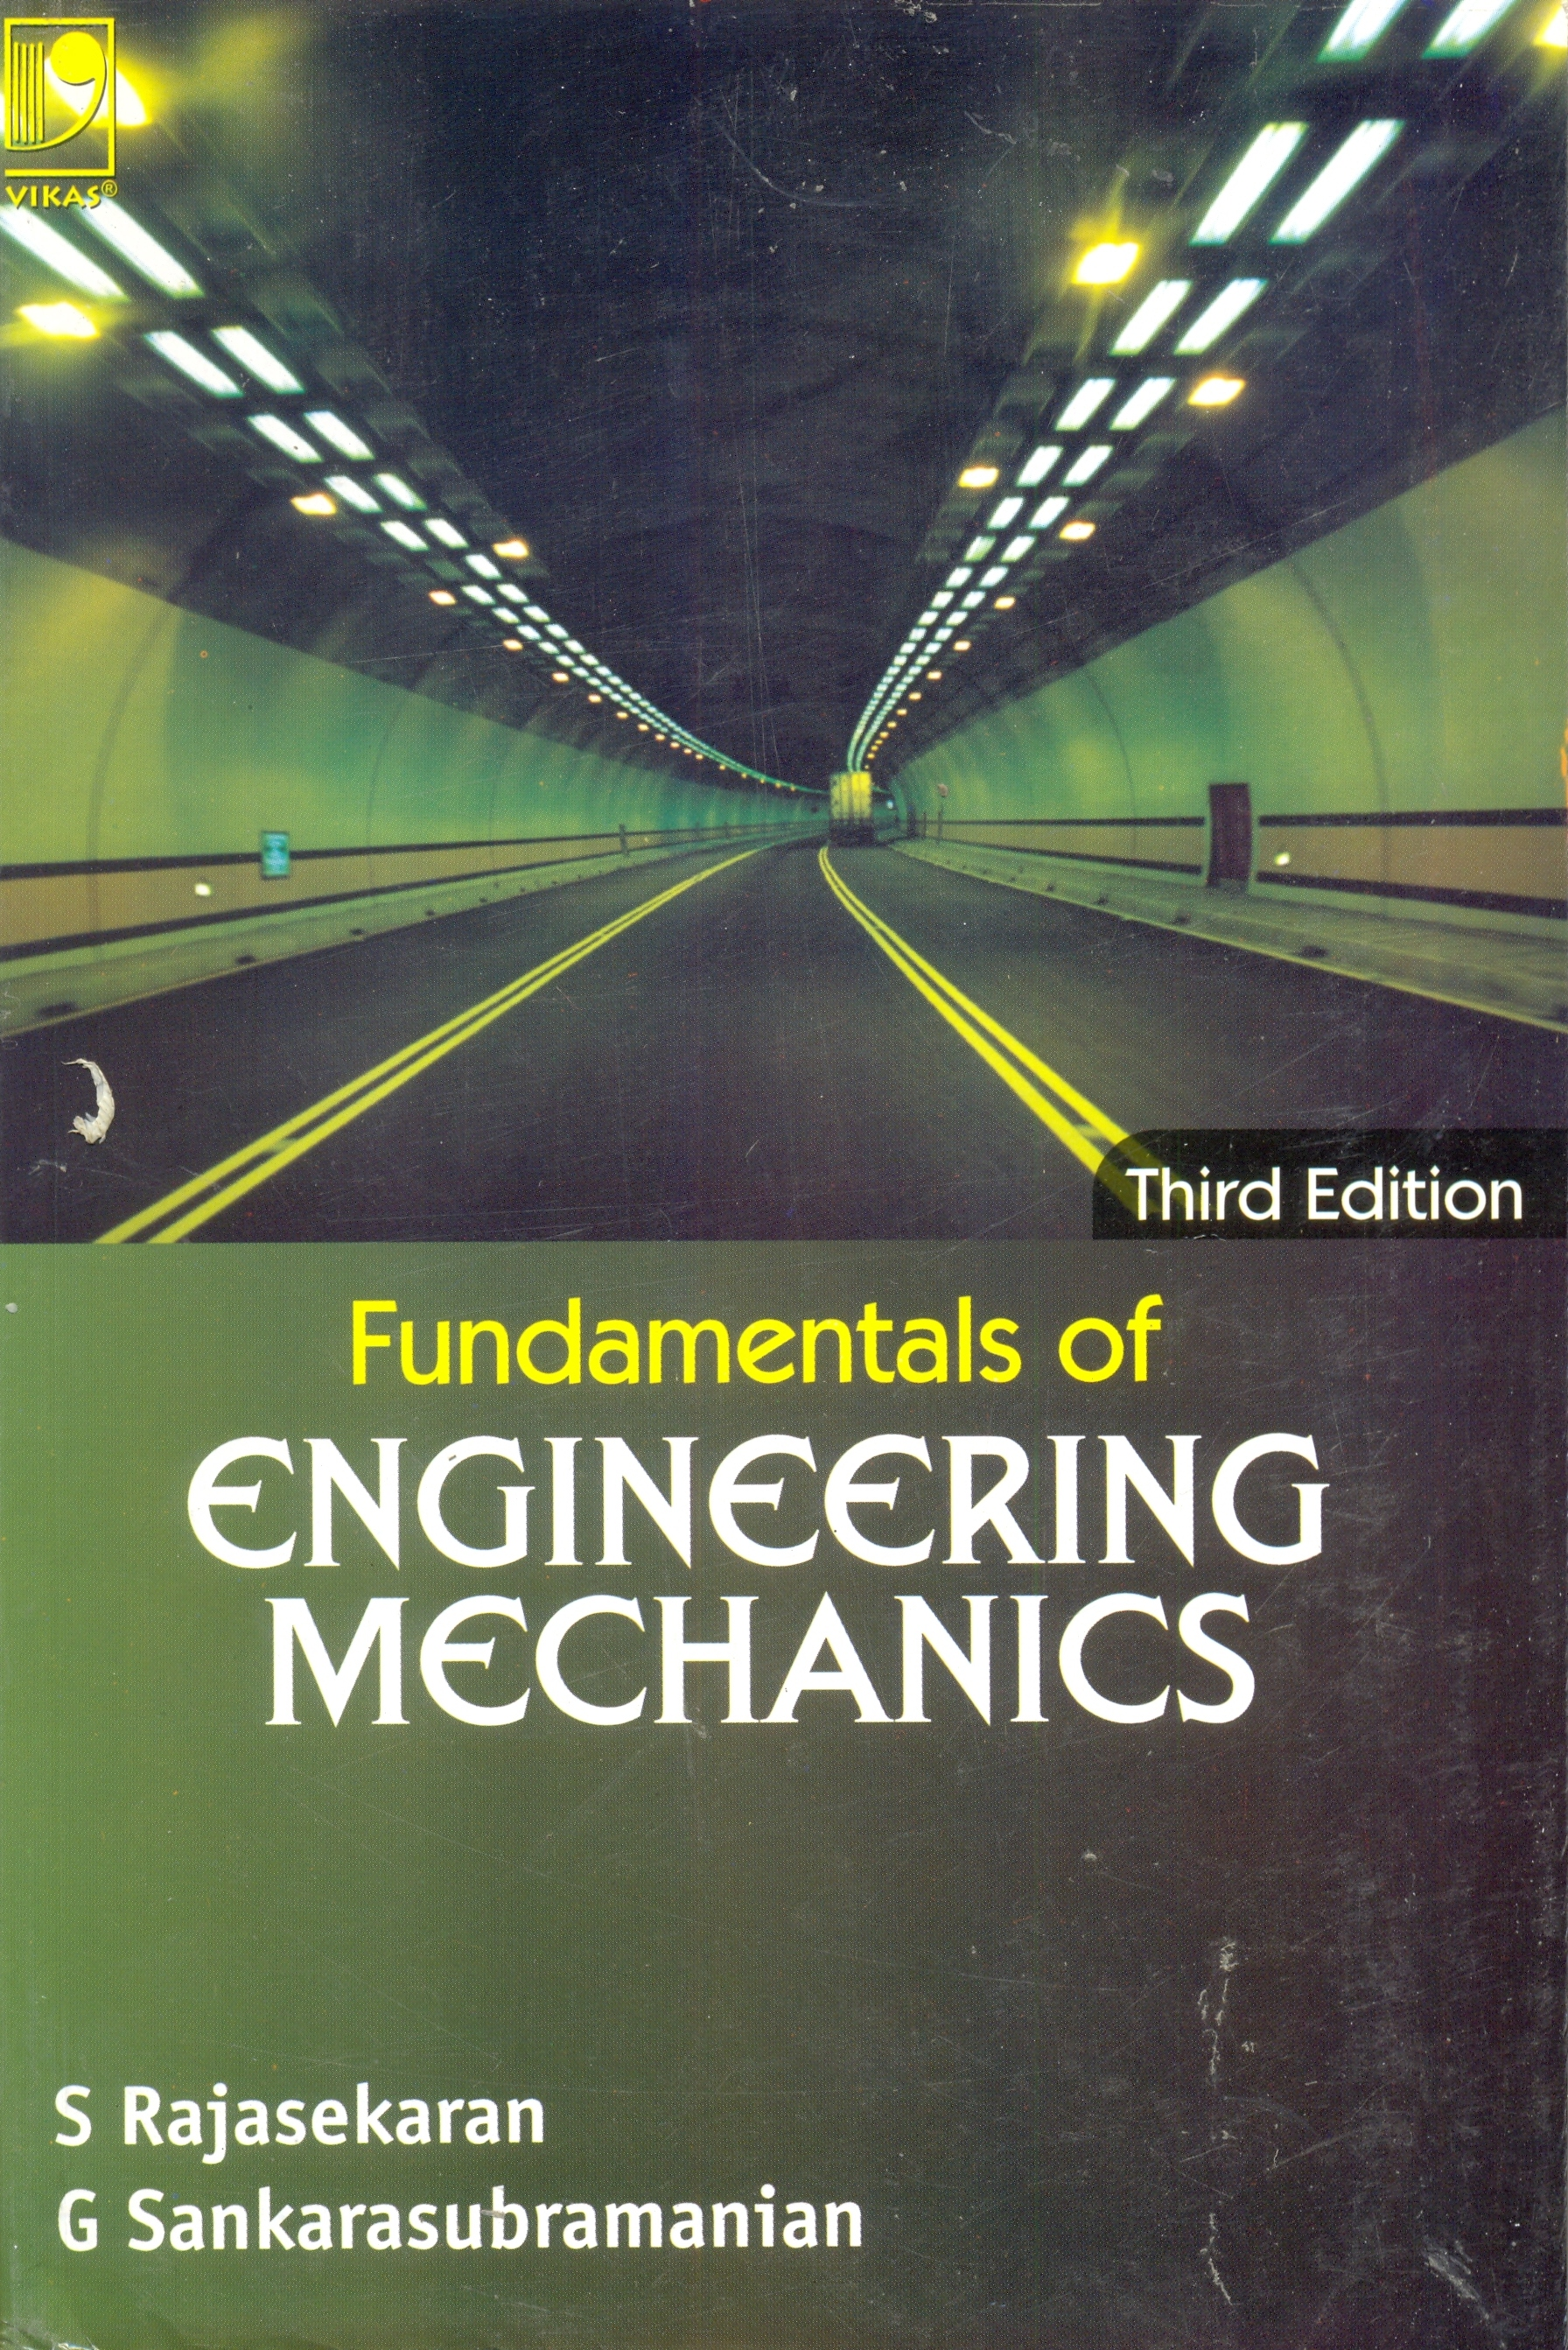 Fundamentals of Engineering Mechanics, 3/e  by G Sankarasubramanian